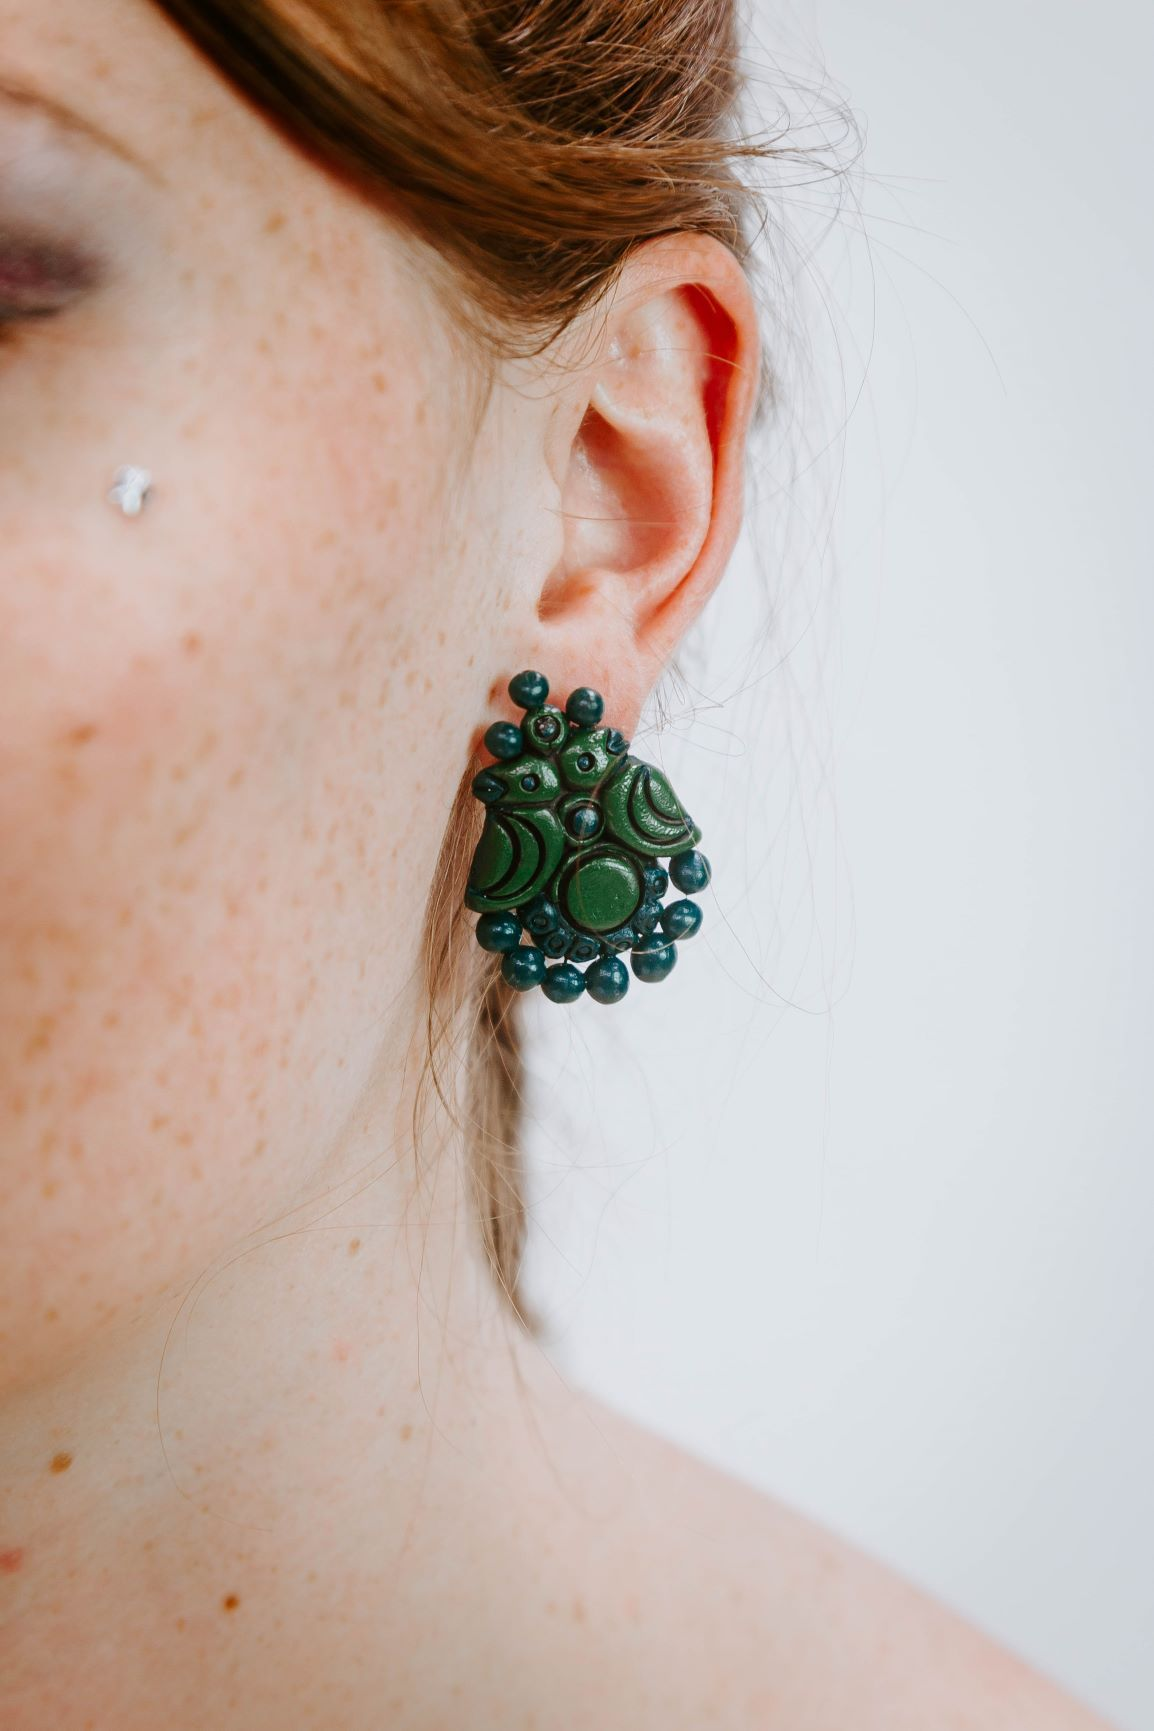 Birdy Green - Boucles d'oreilles - Azaadi, la mode responsable accessible